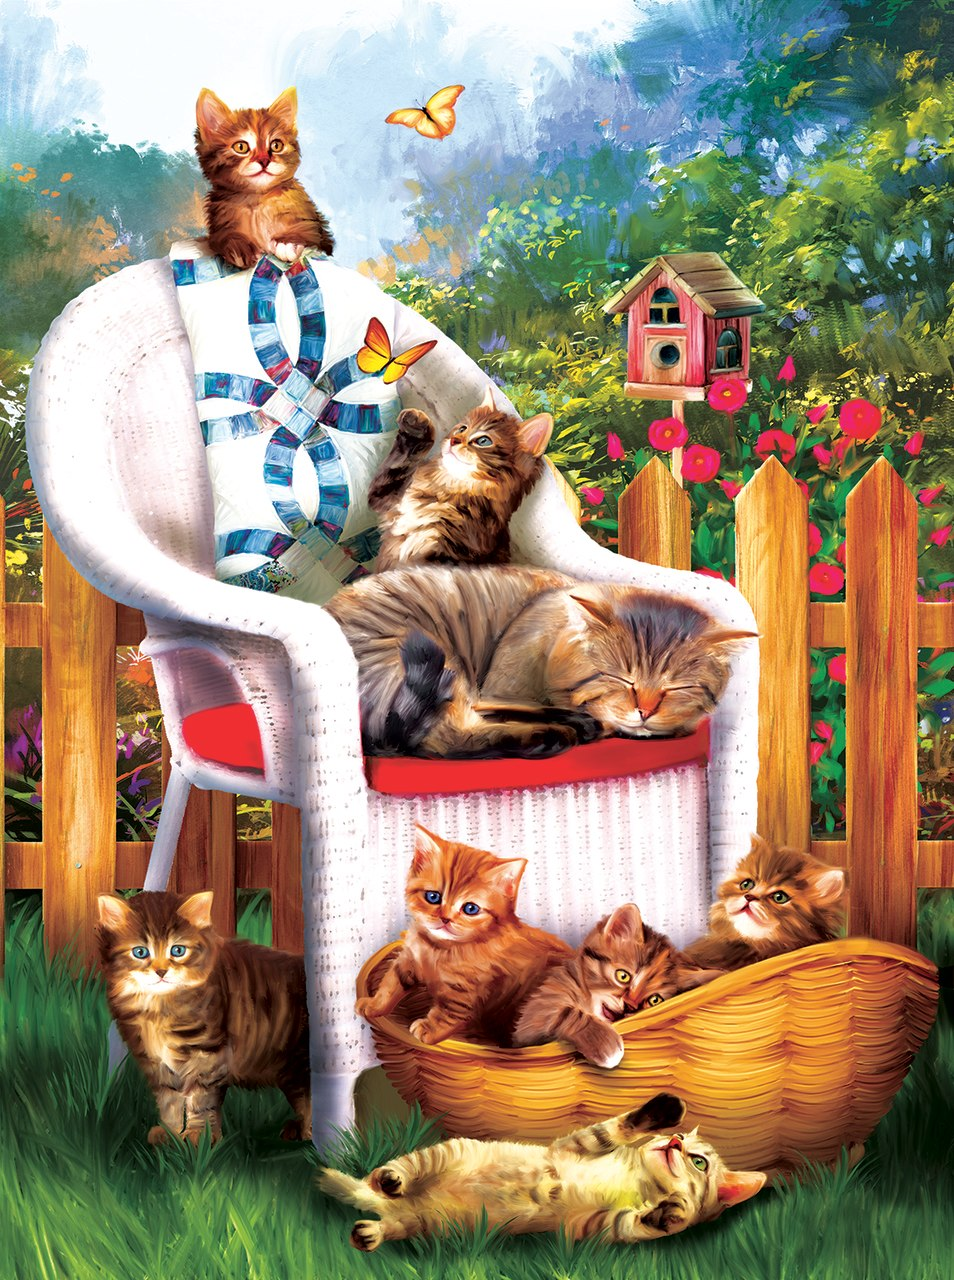 Mama's Cat Nap - 1000pc Jigsaw Puzzle by Sunsout  			  					NEW